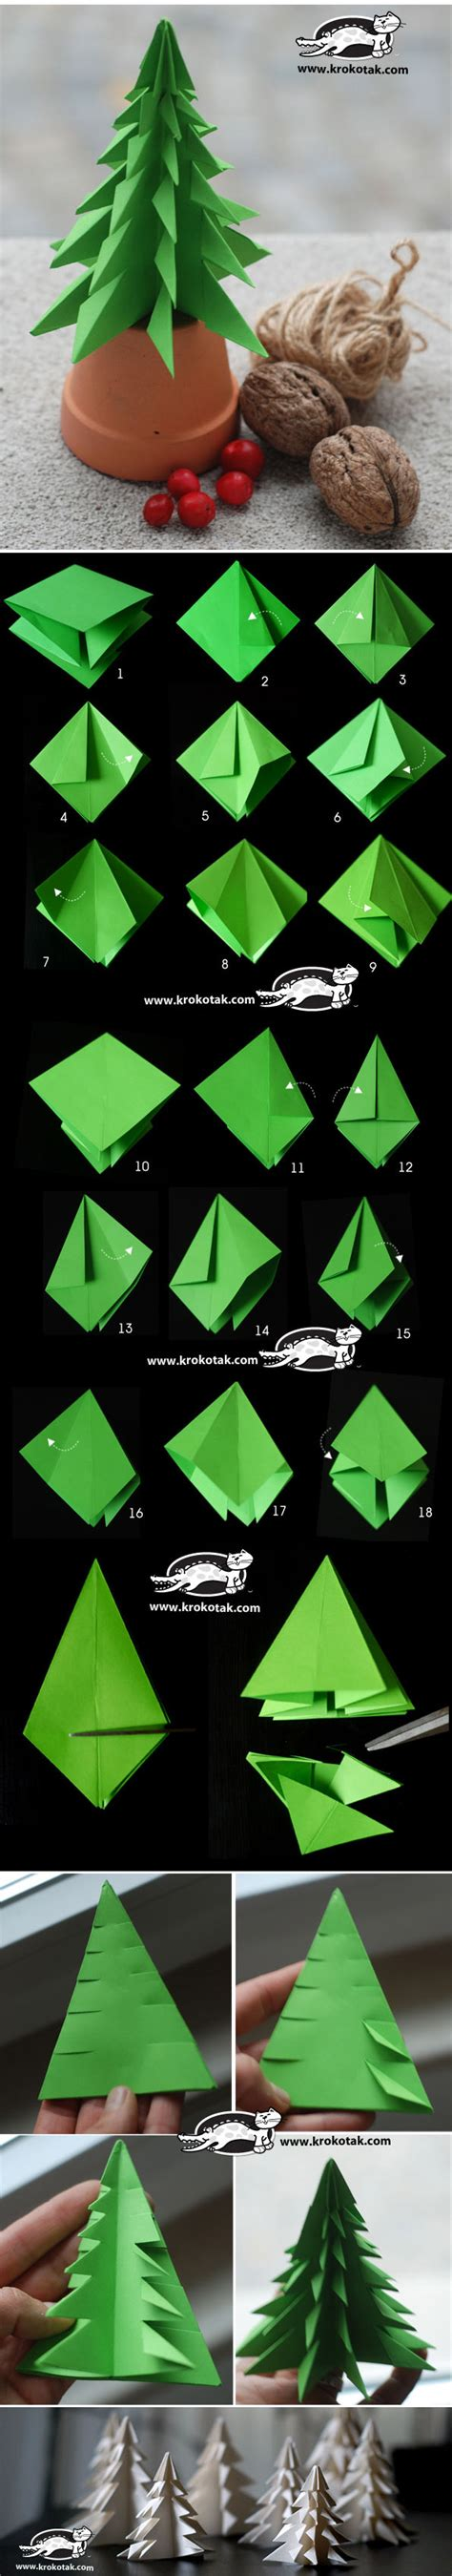 folding a fir tree fold a fir tree http krokotak 2013 11 fold a fir tree crafty corner